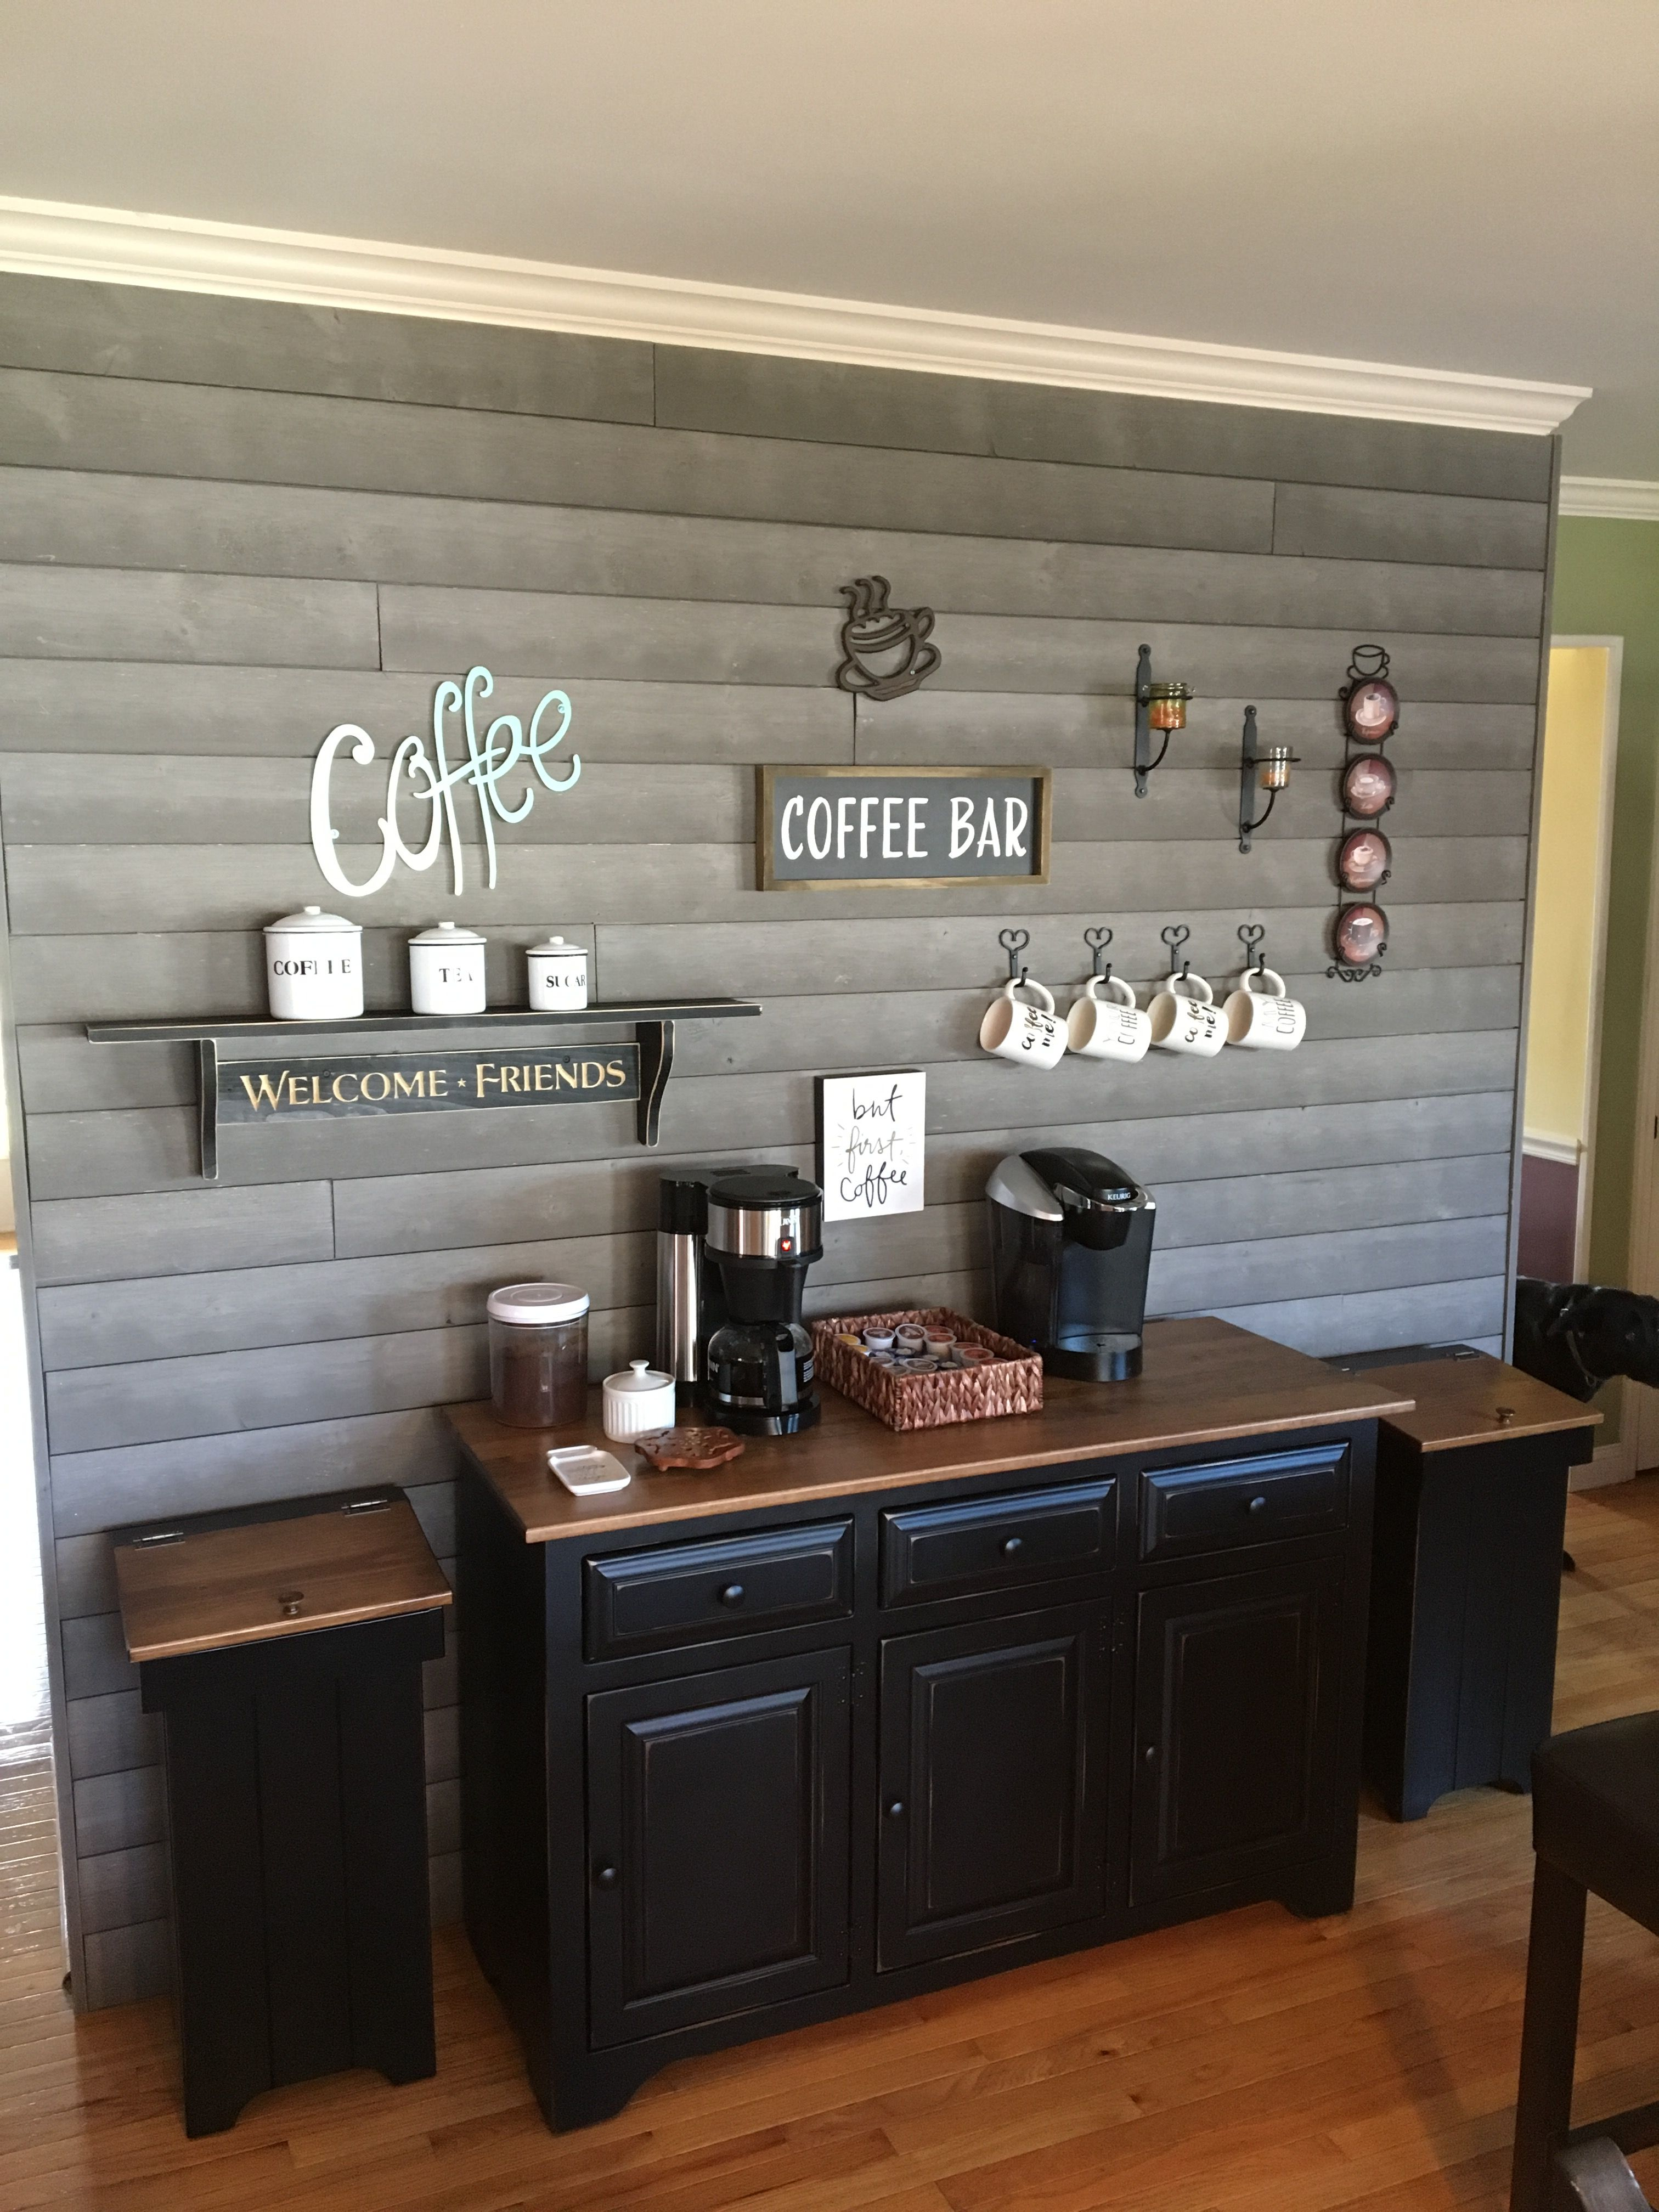 21 inspiration of coffee place design that is suitable in your home rh stegavia com